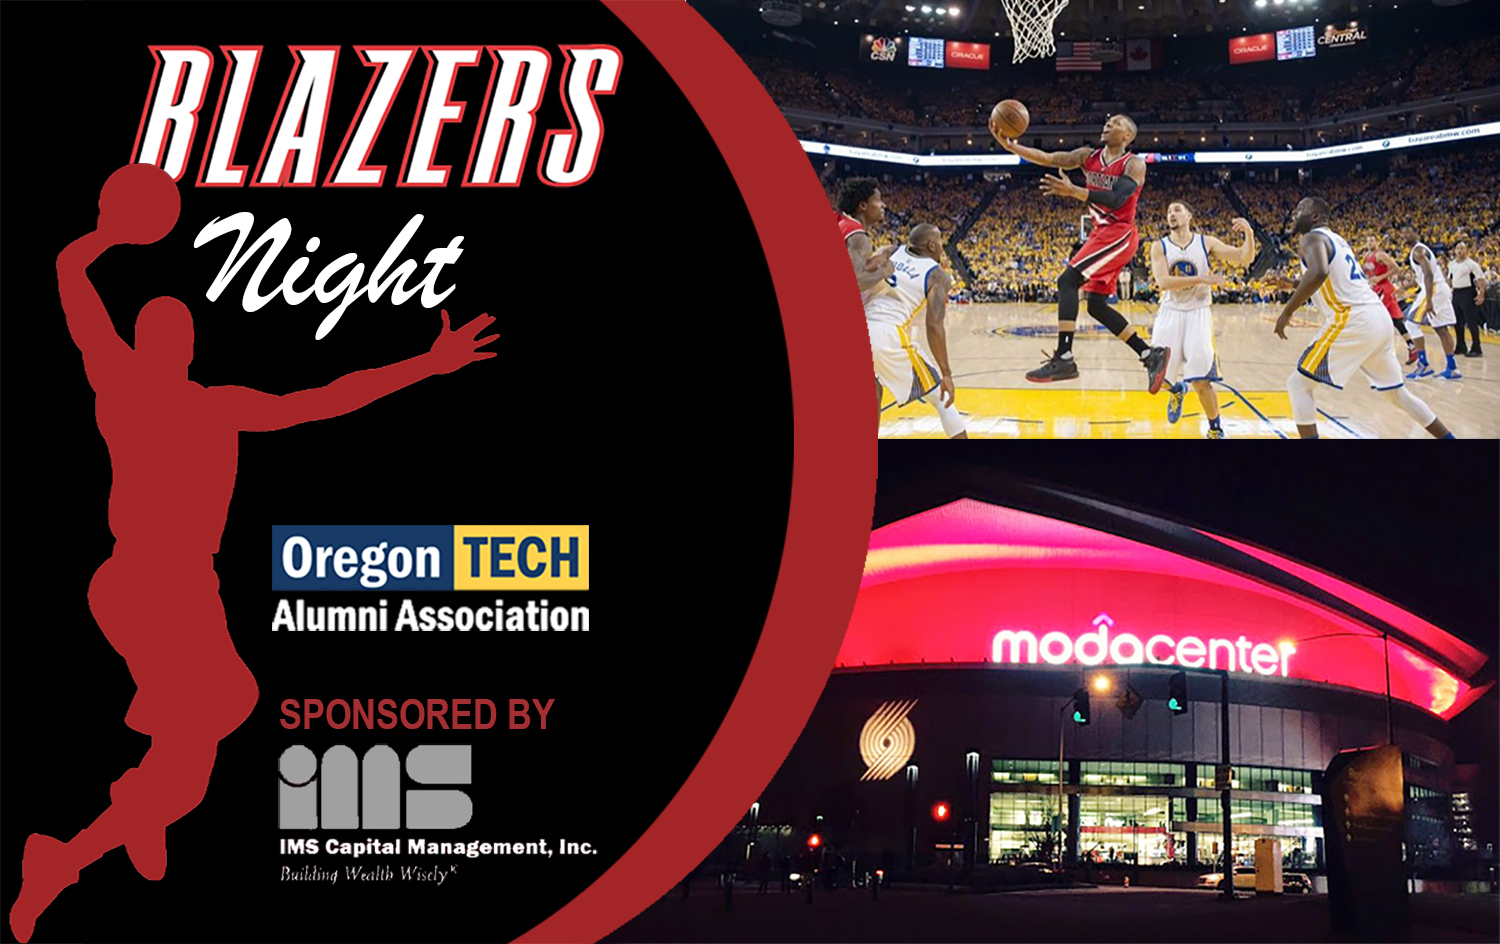 2019 Blazers Night Graphic